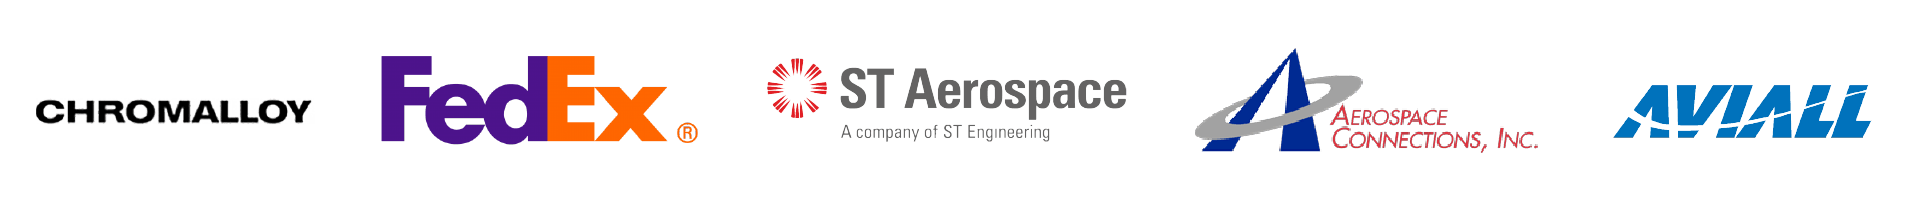 GA Telesis - Aircraft, Engines, Maintenance & Solution-Based